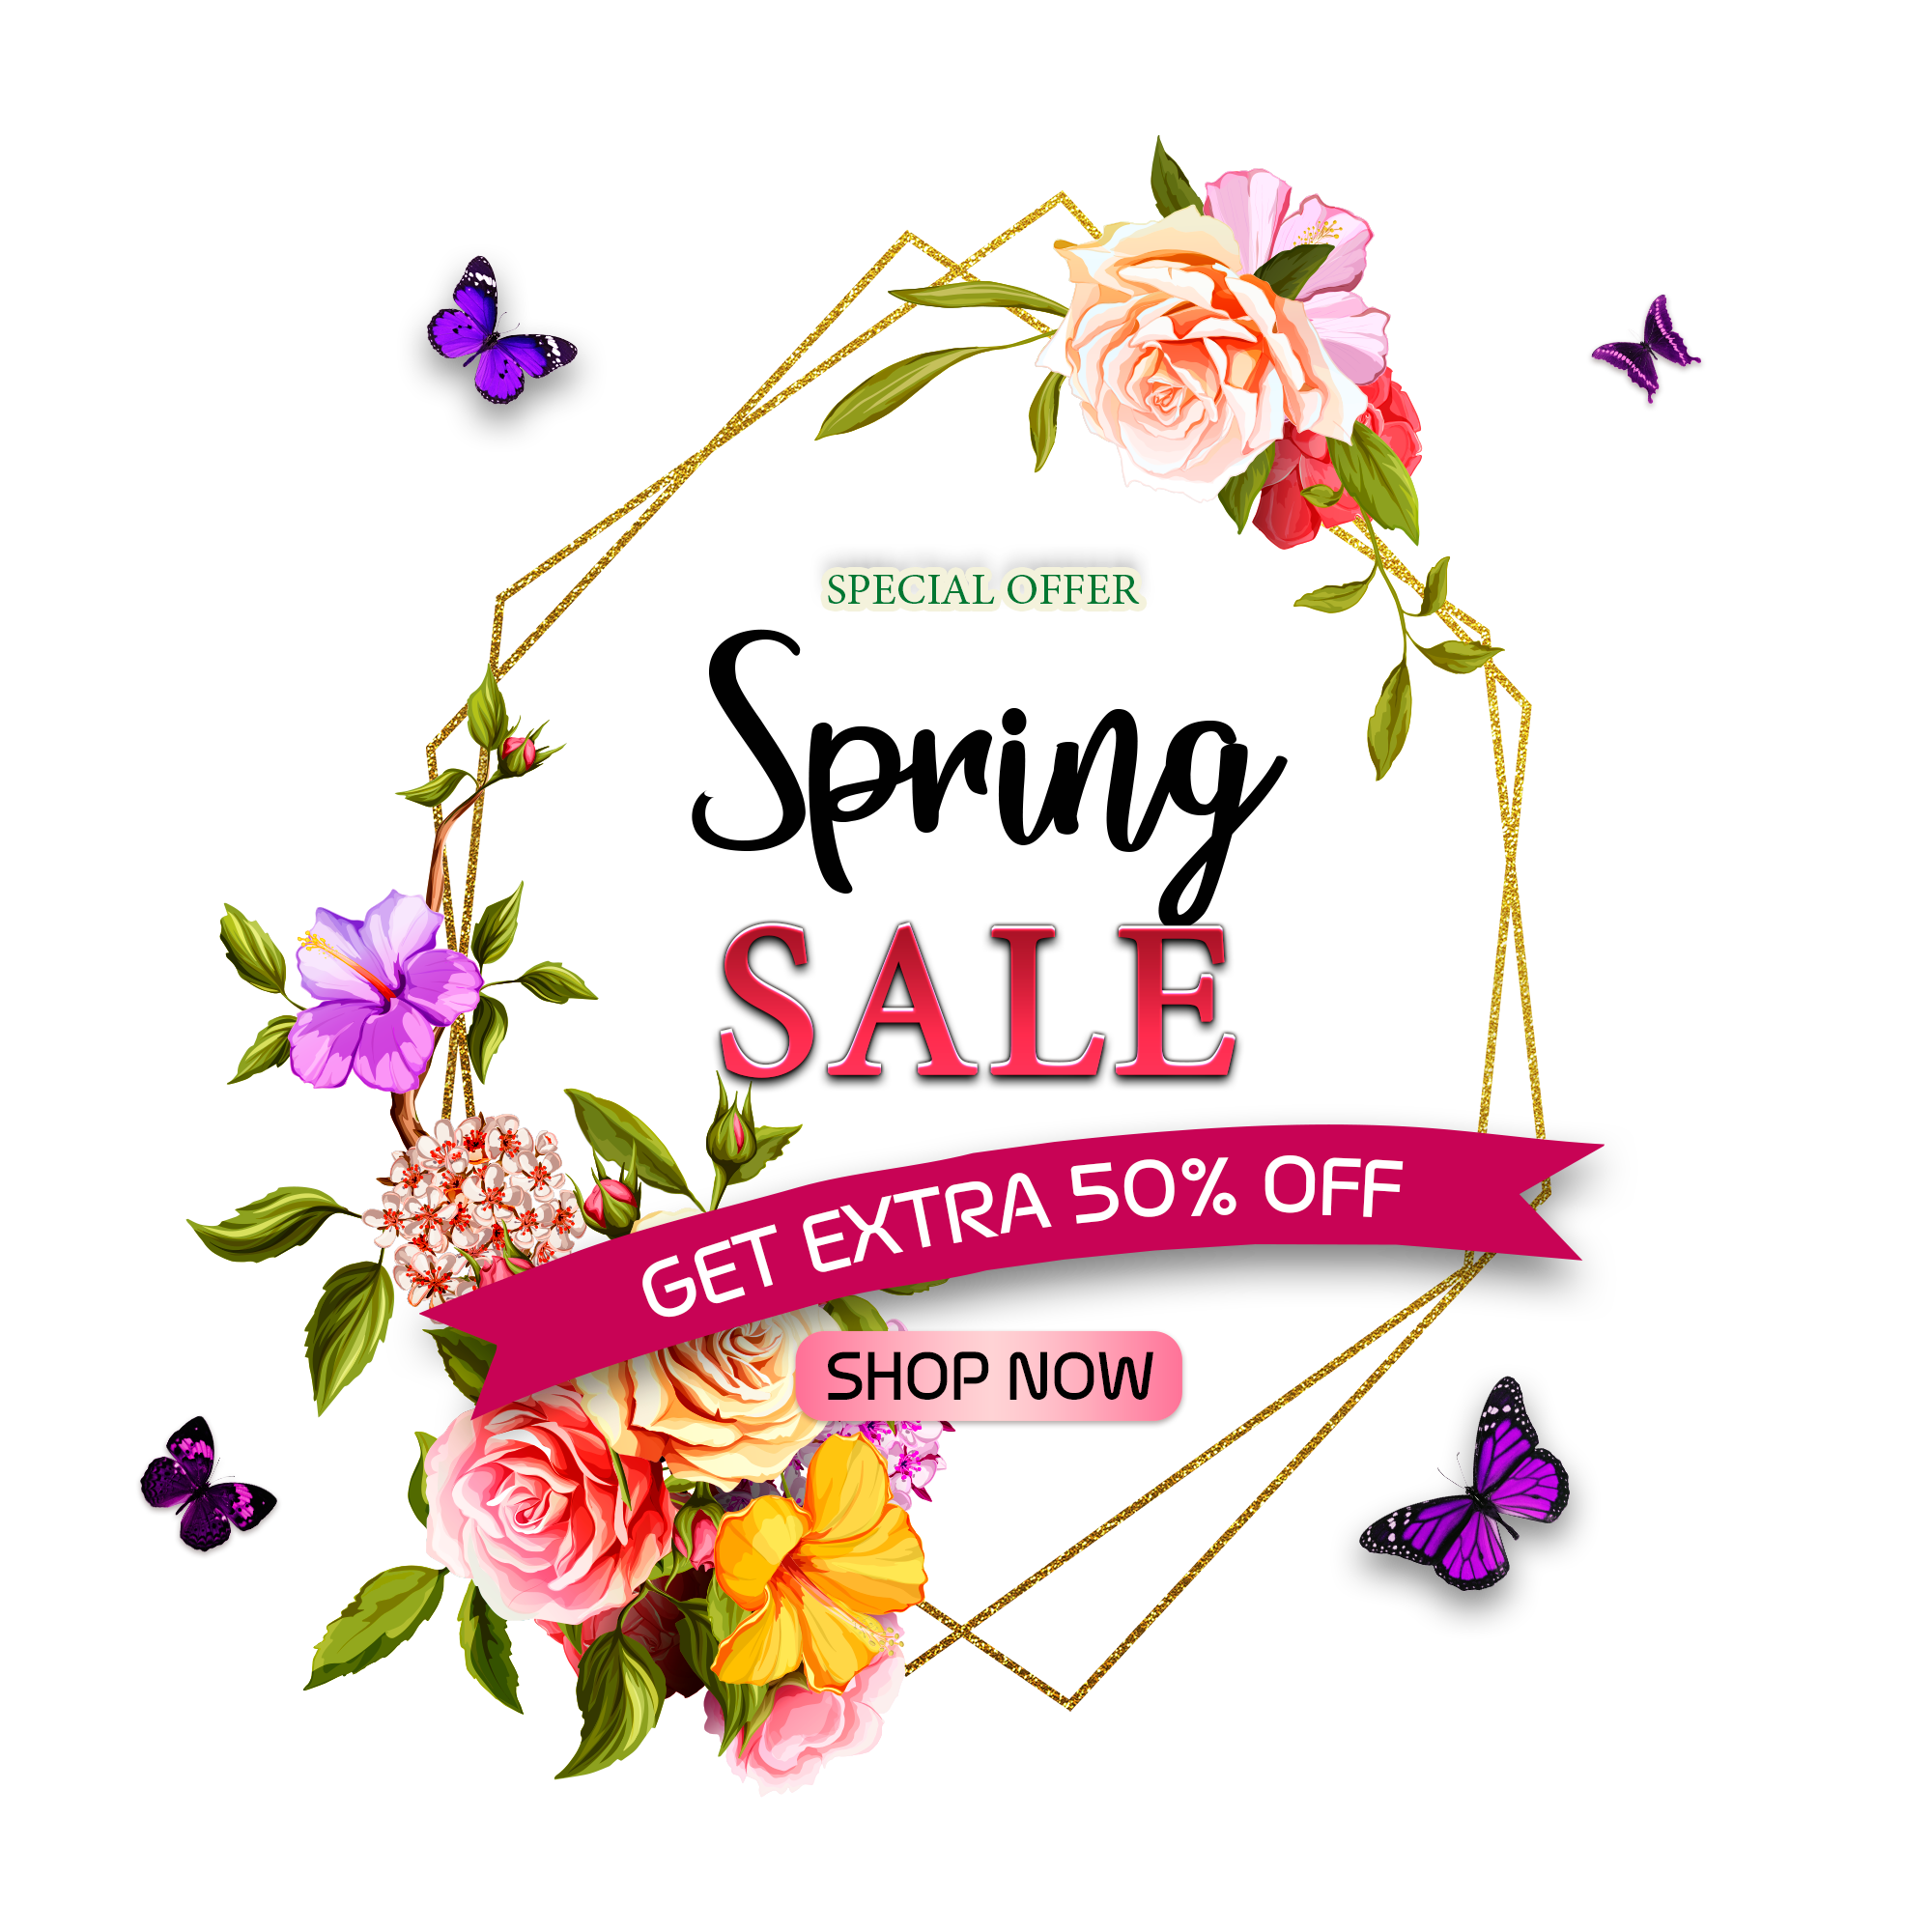 Free wedding banner clipart floral vintage rose library Spring Sale Background With Beautiful Flowers, Wedding, Invitation ... library